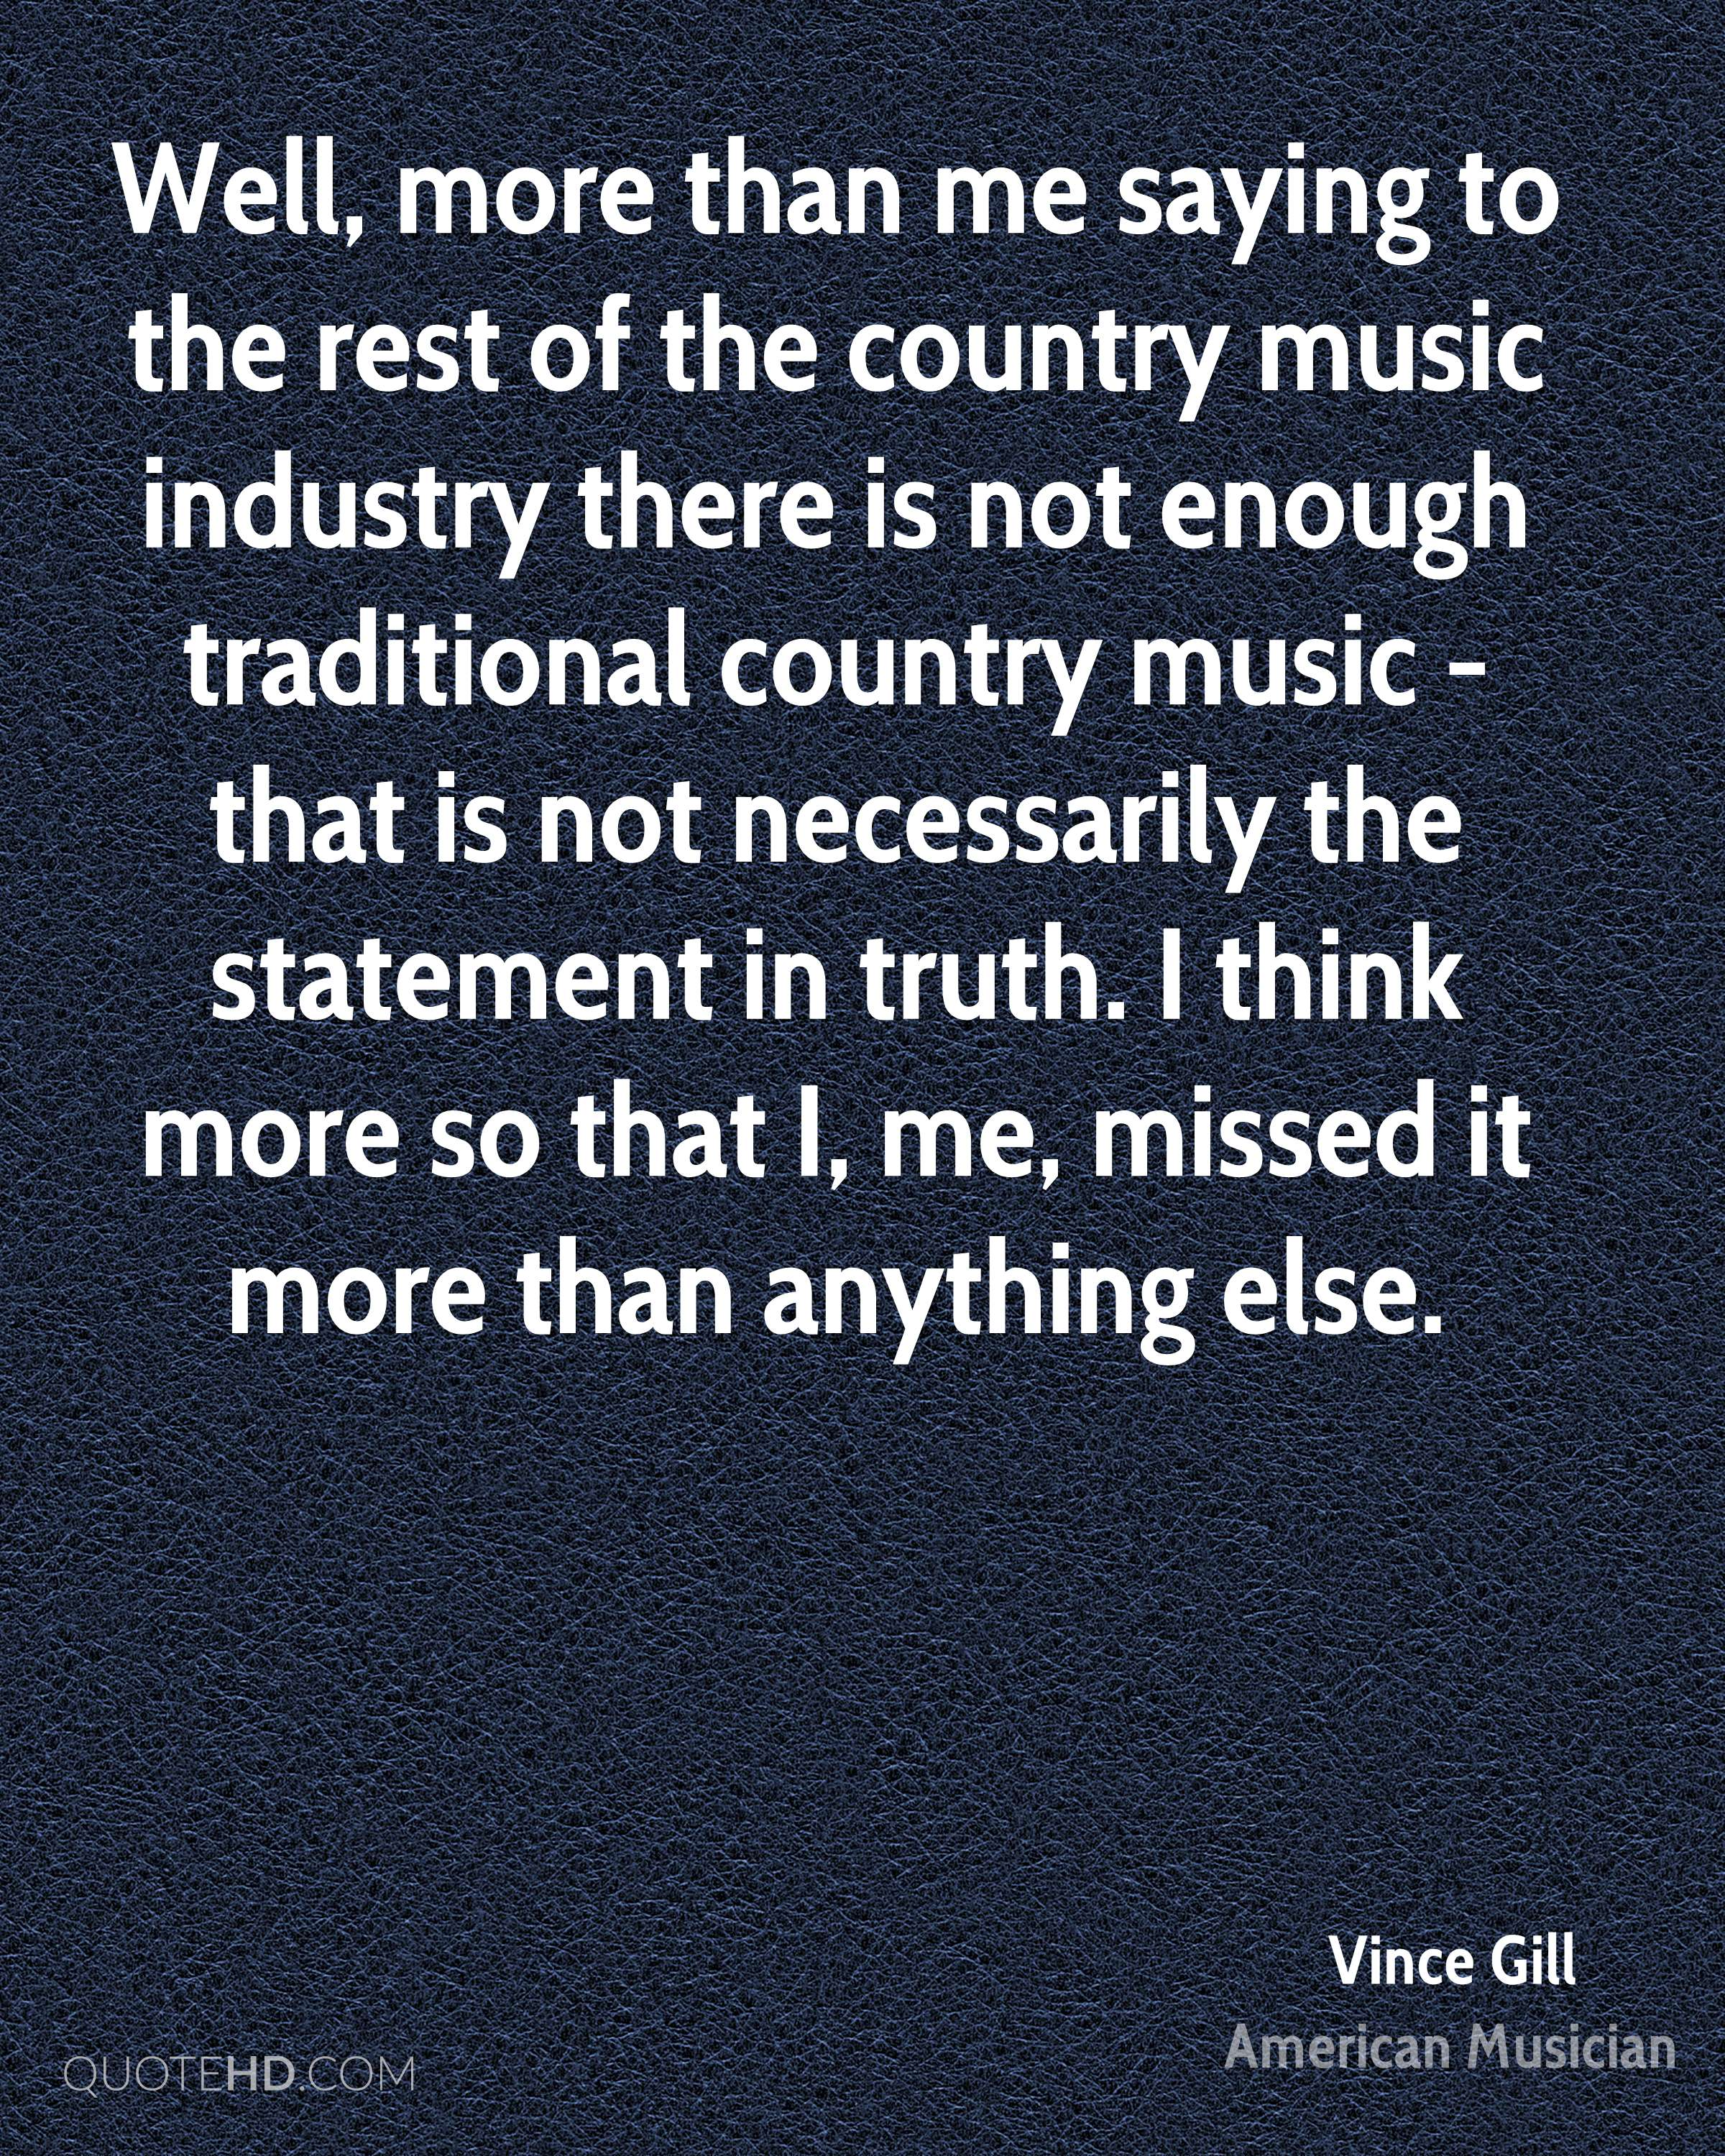 Well, more than me saying to the rest of the country music industry there is not enough traditional country music - that is not necessarily the statement in truth. I think more so that I, me, missed it more than anything else.